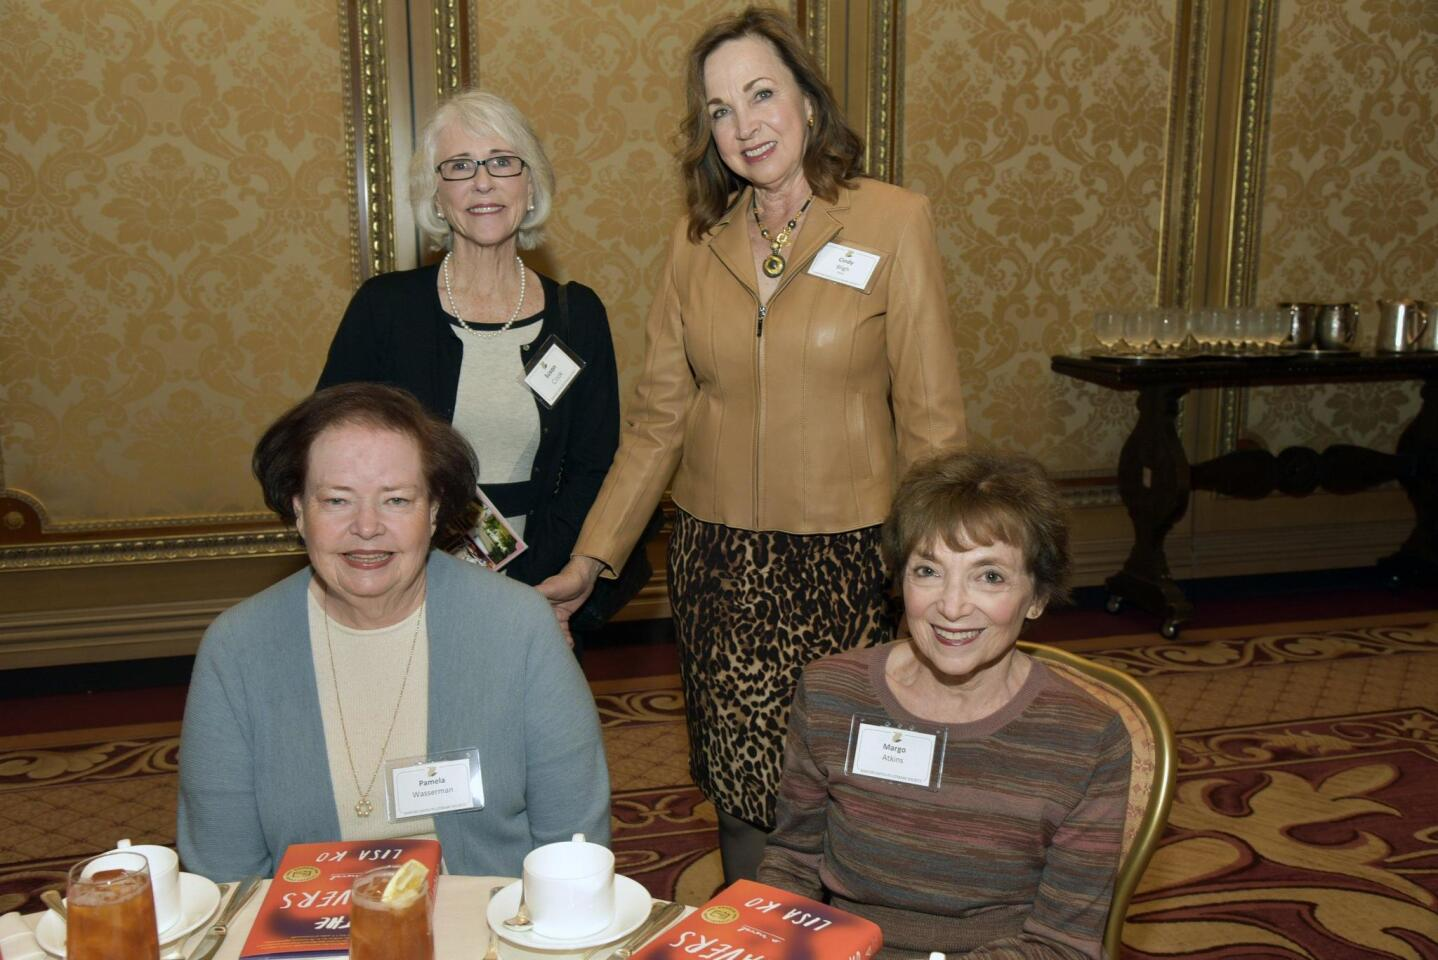 Standing: Sue Cook, Cindy Bligh. Seated: Pam Wasserman, Margo Atkins